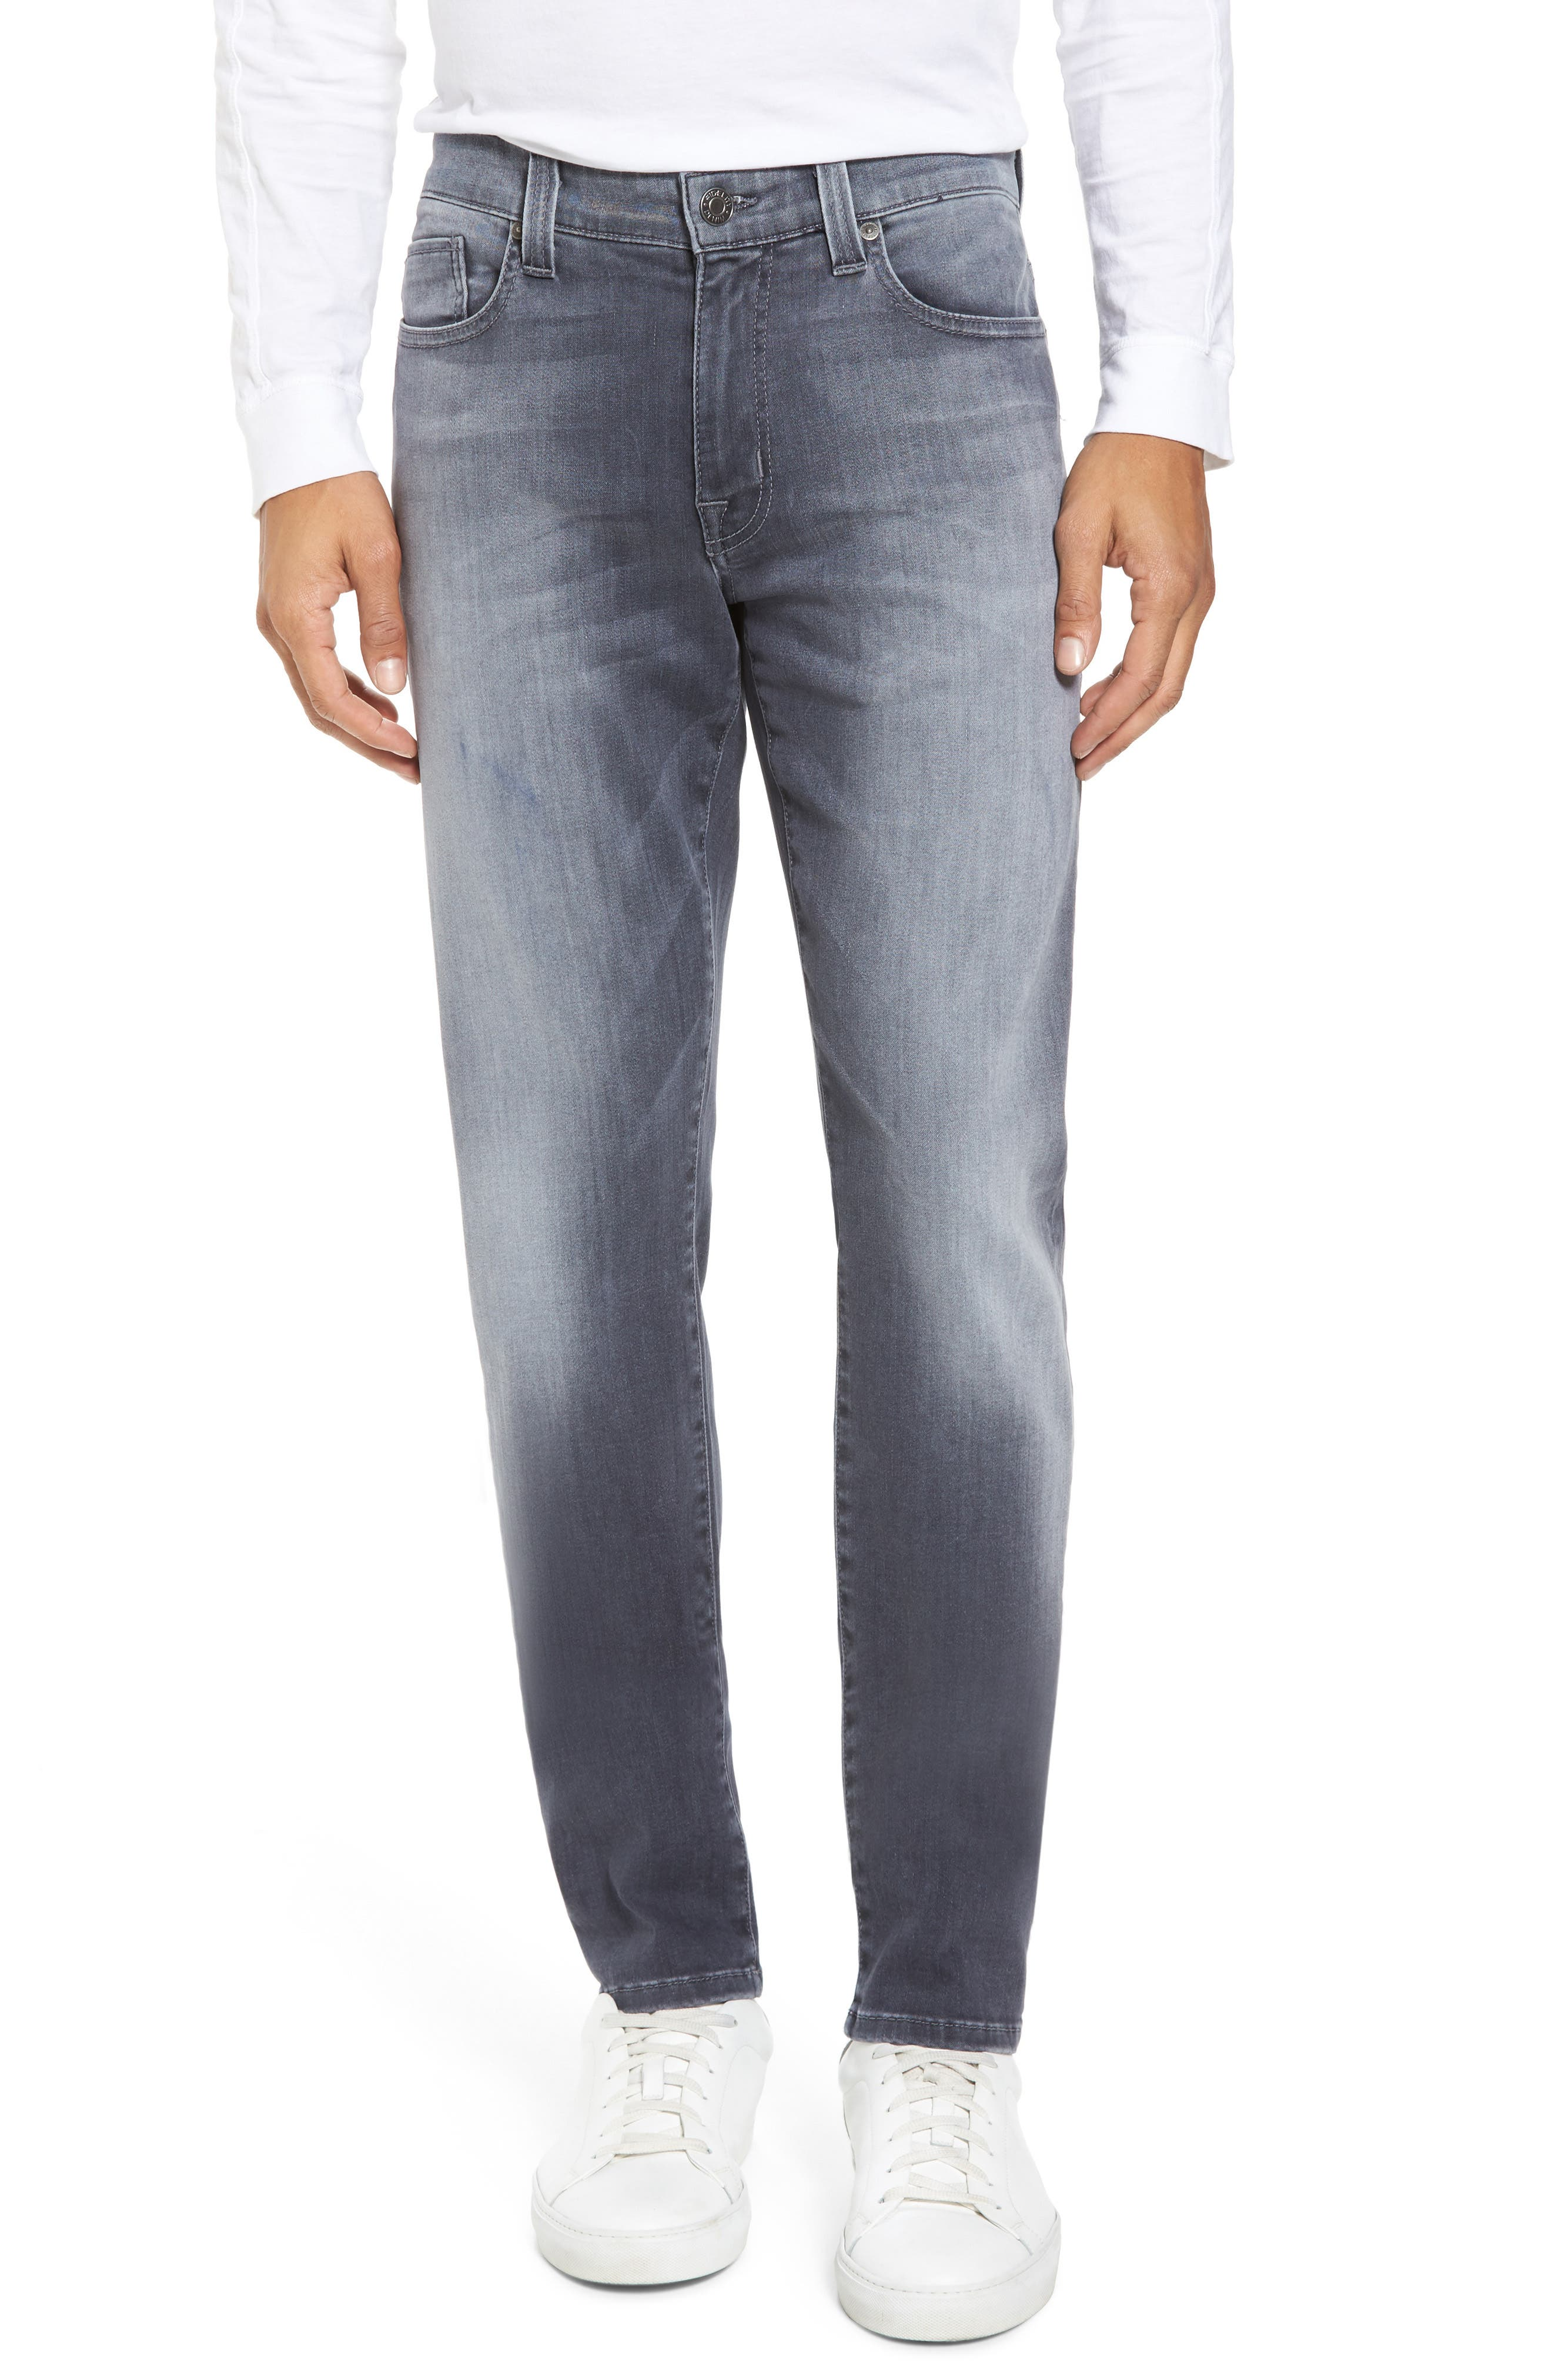 Torino Slim Fit Jeans,                         Main,                         color, Fade To Grey